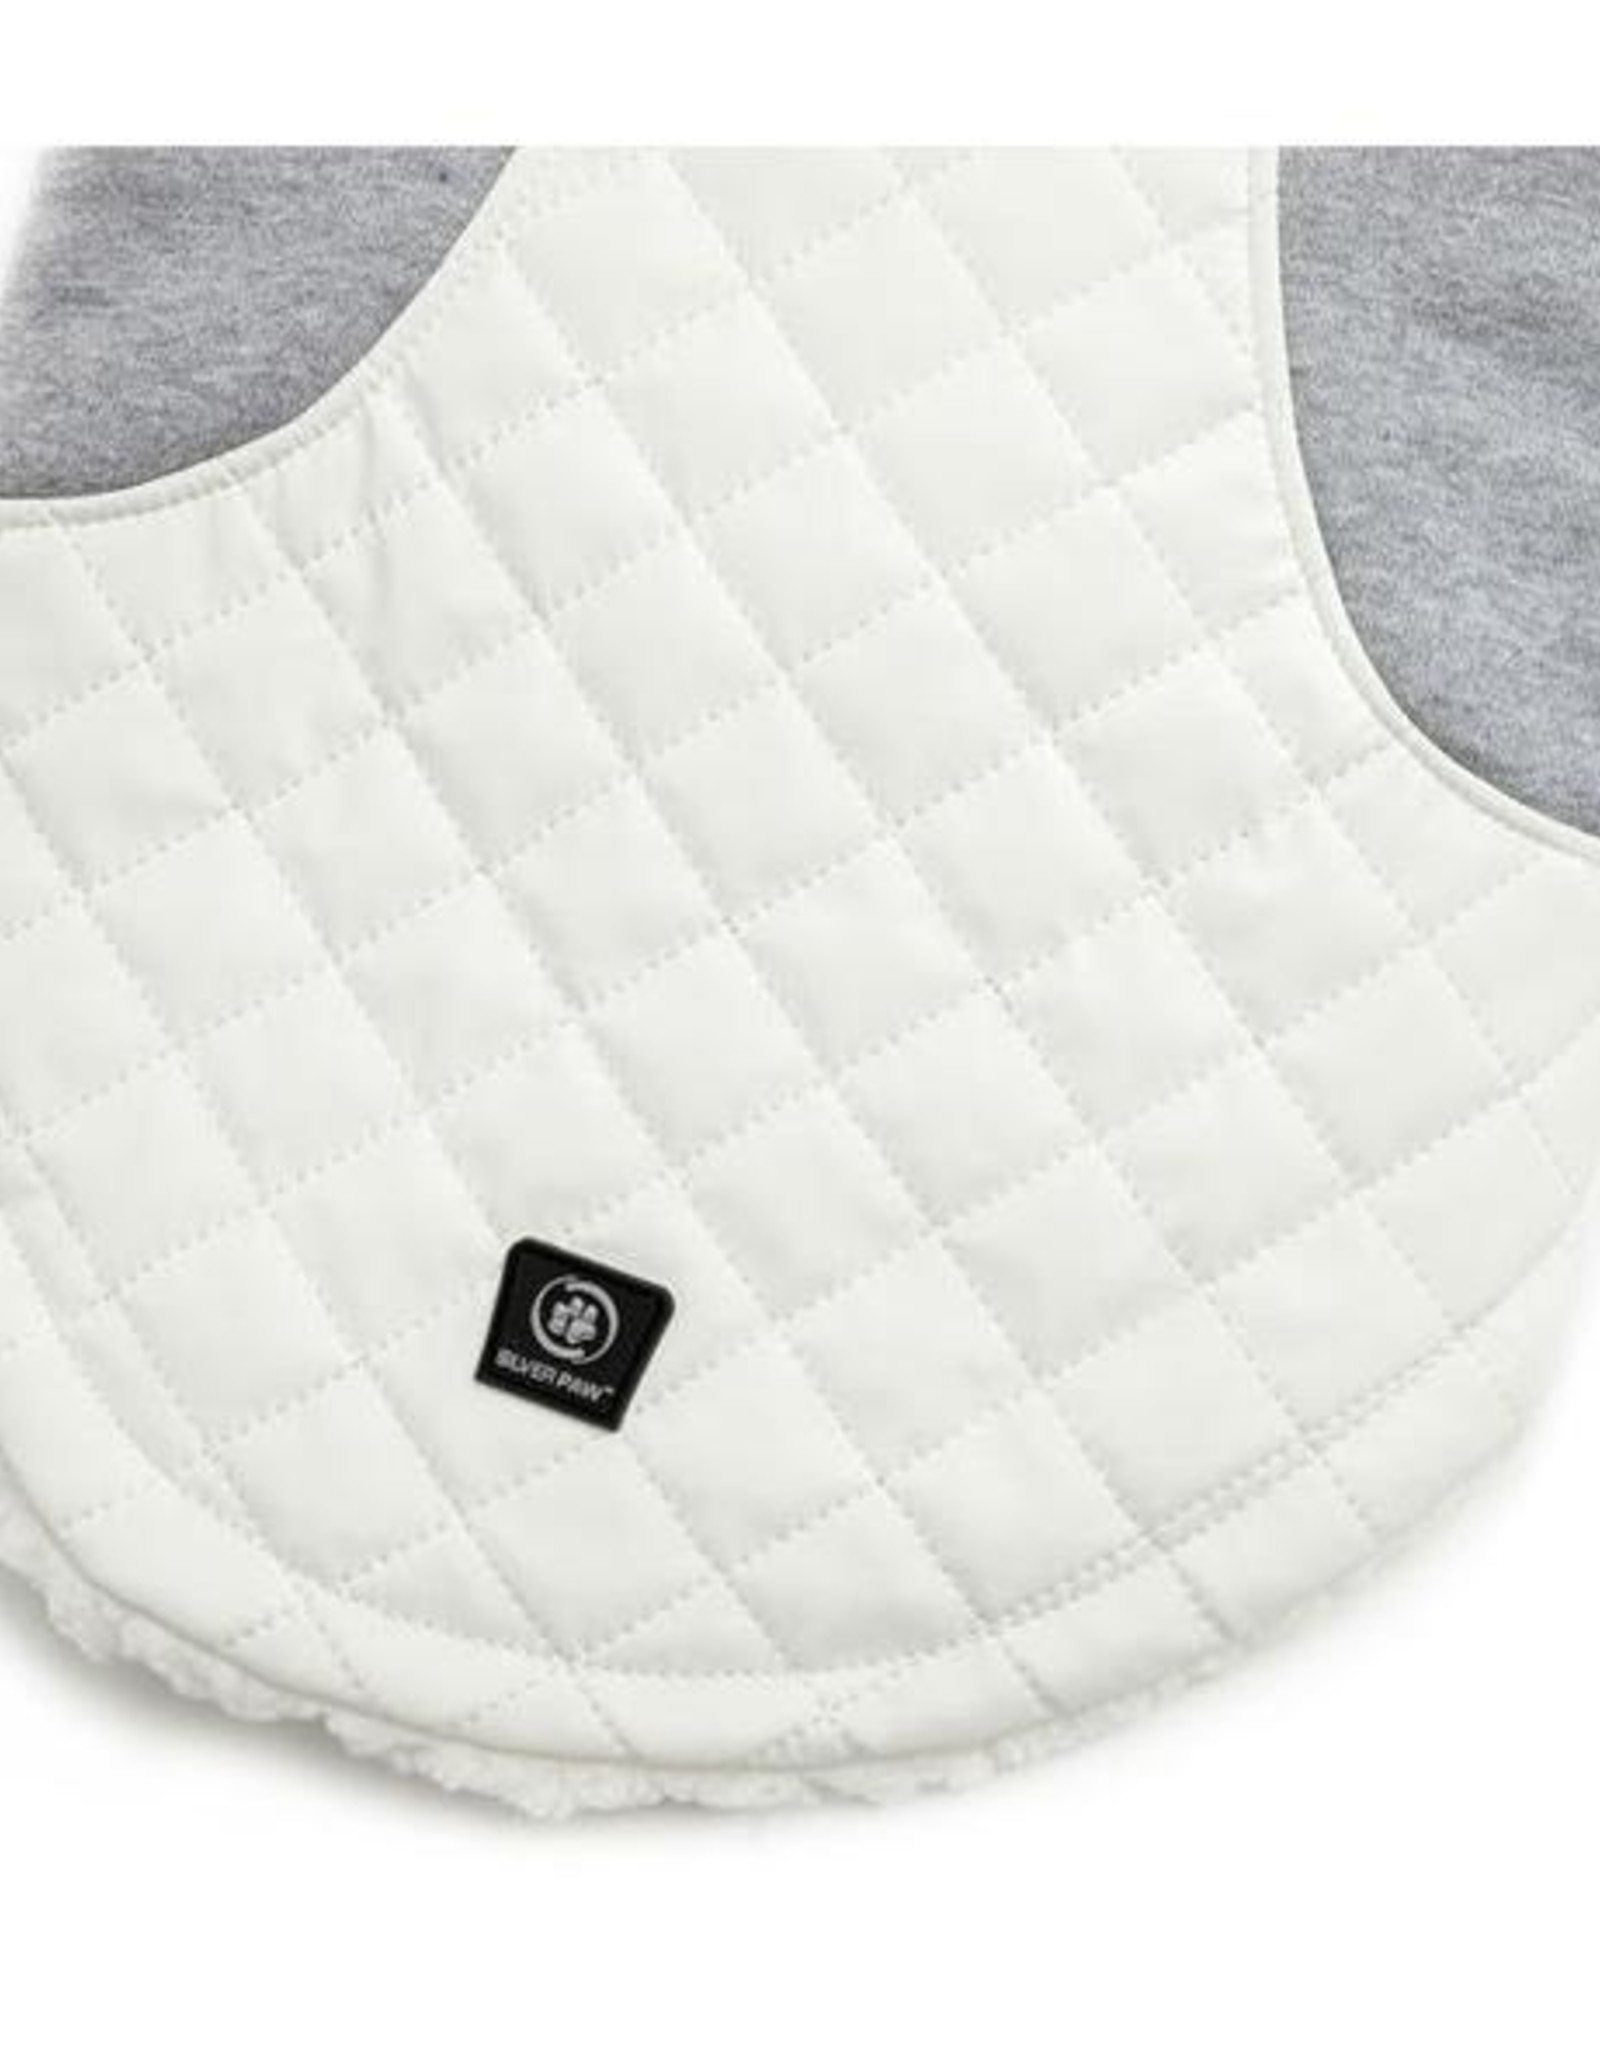 Silver Paw Clothing Silver Paw - Quilted Jacket Faux Leather White/Grey